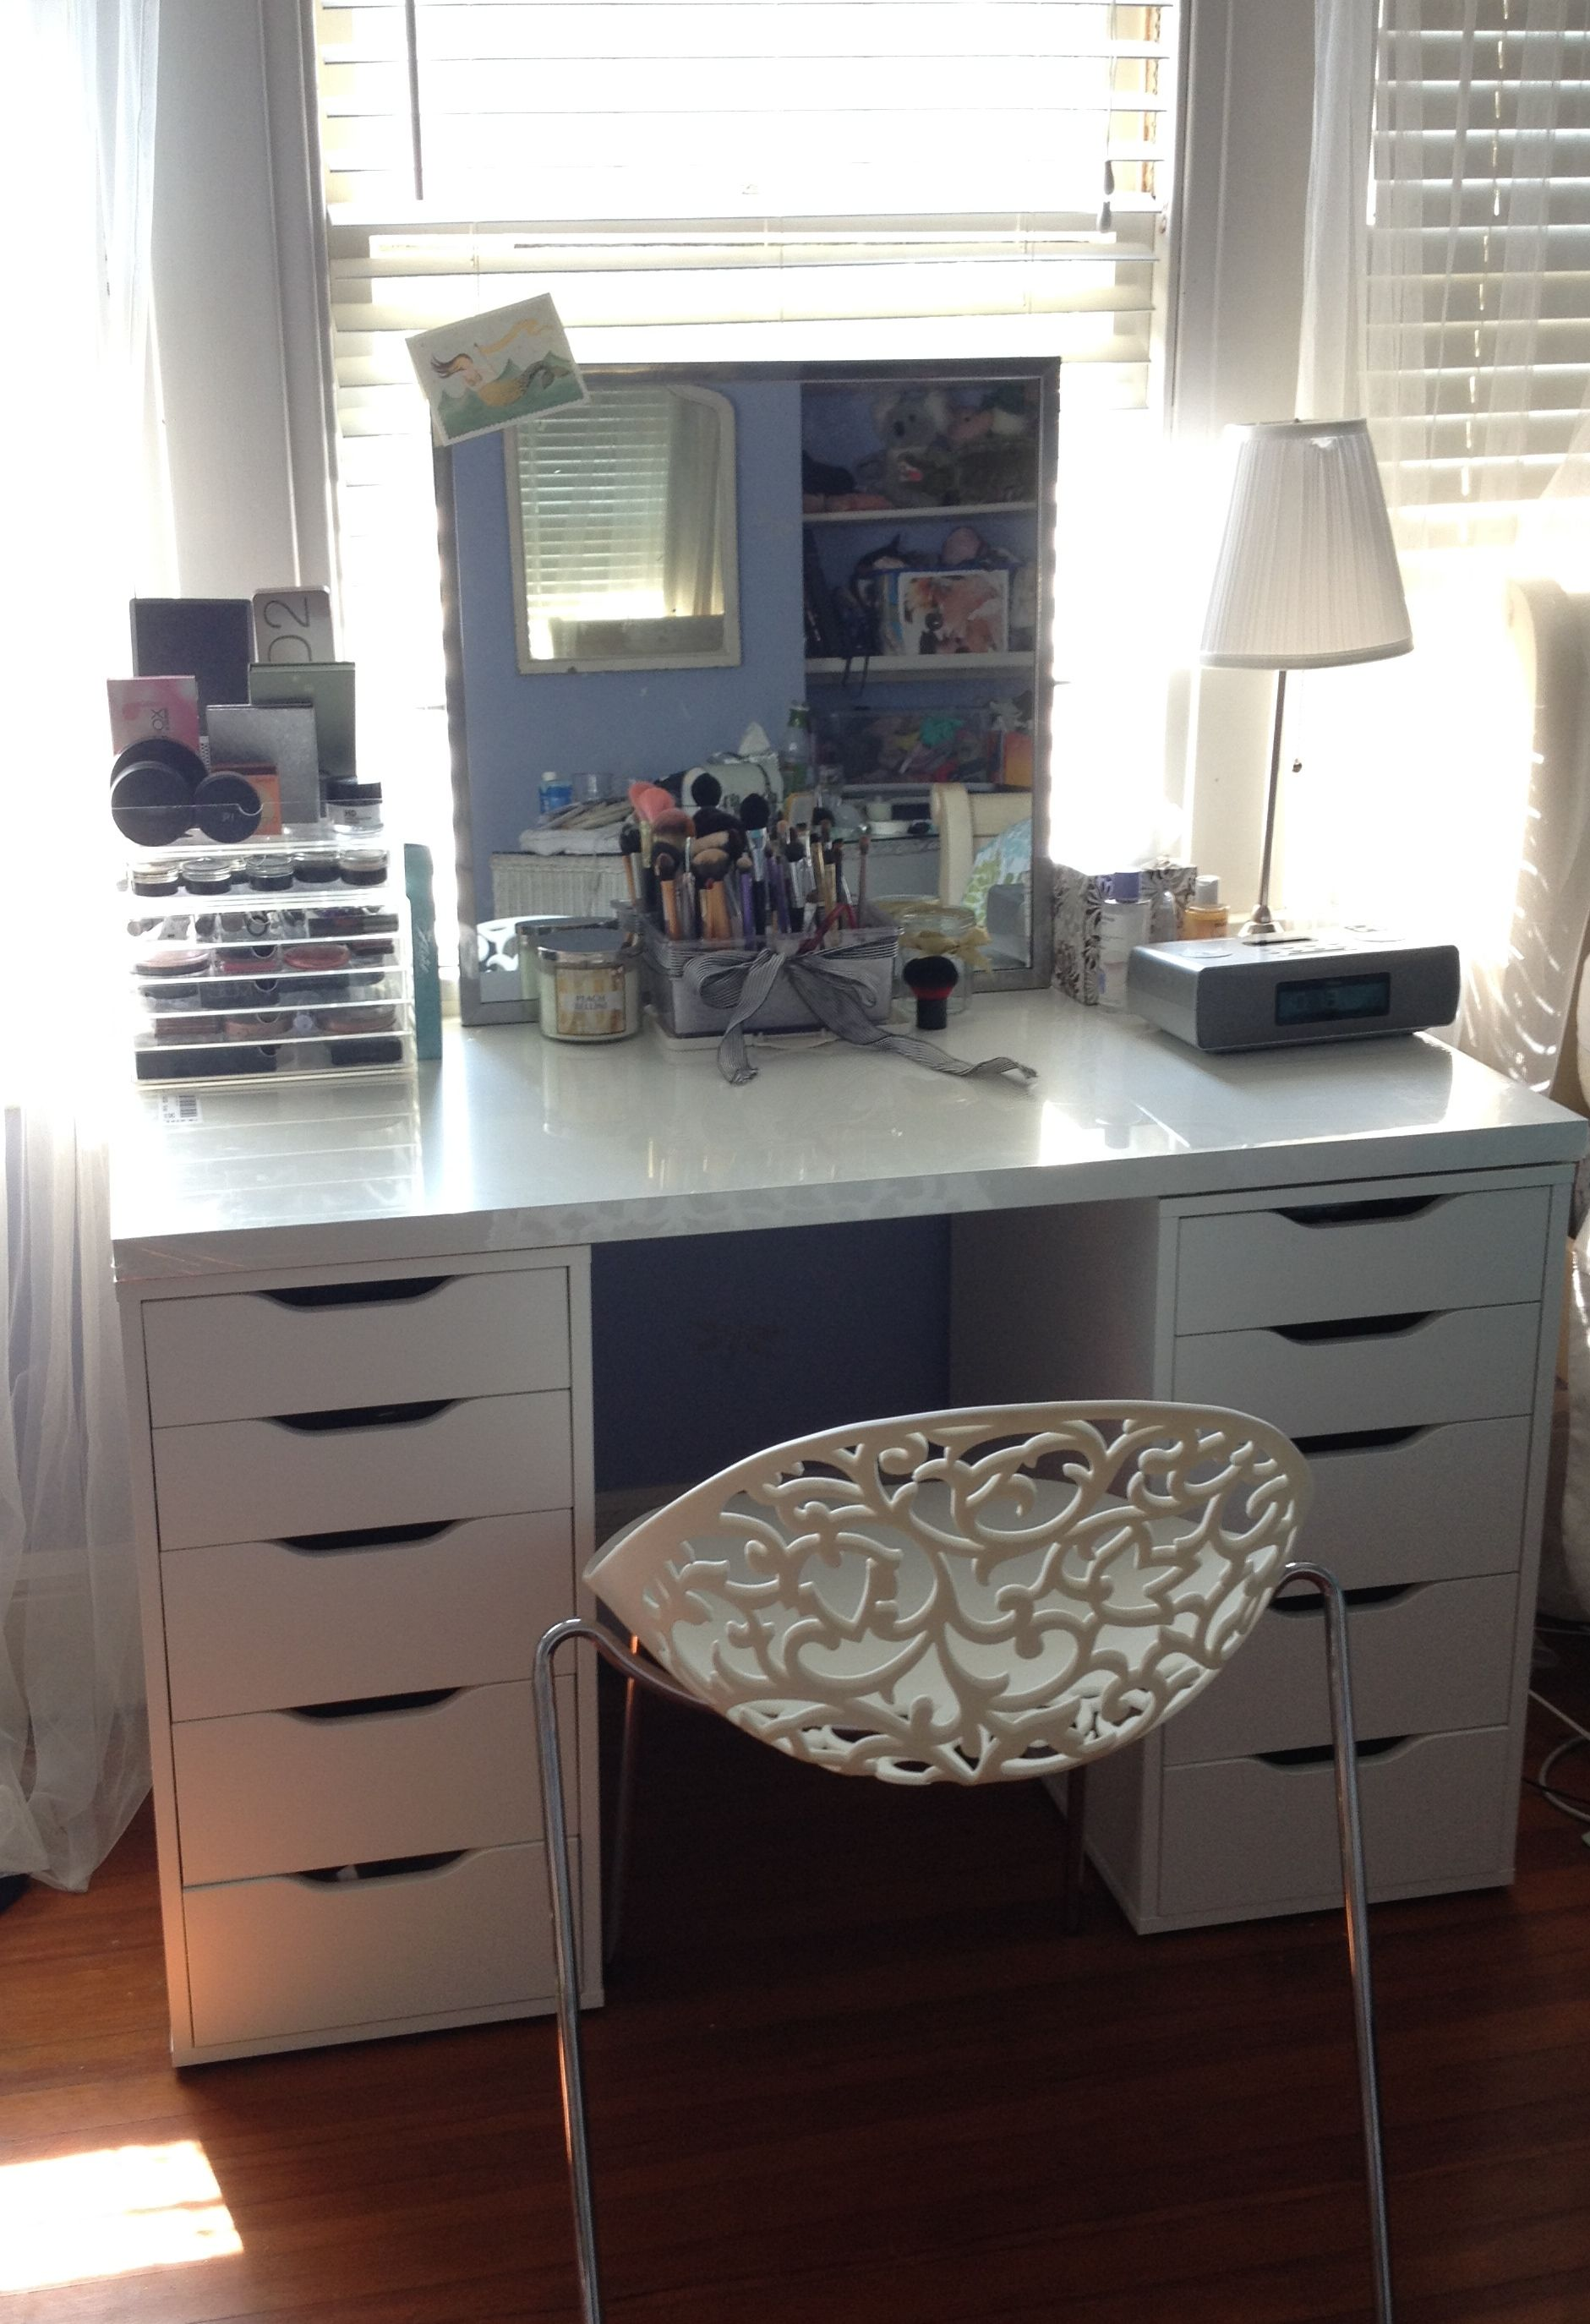 Makeup Vanity Sets. Makeup Vanity Sets for Your Bathroom When you think of a makeup vanity set, you may think of a princess or movie star doing their hair and makeup in a glamorous dressing room.